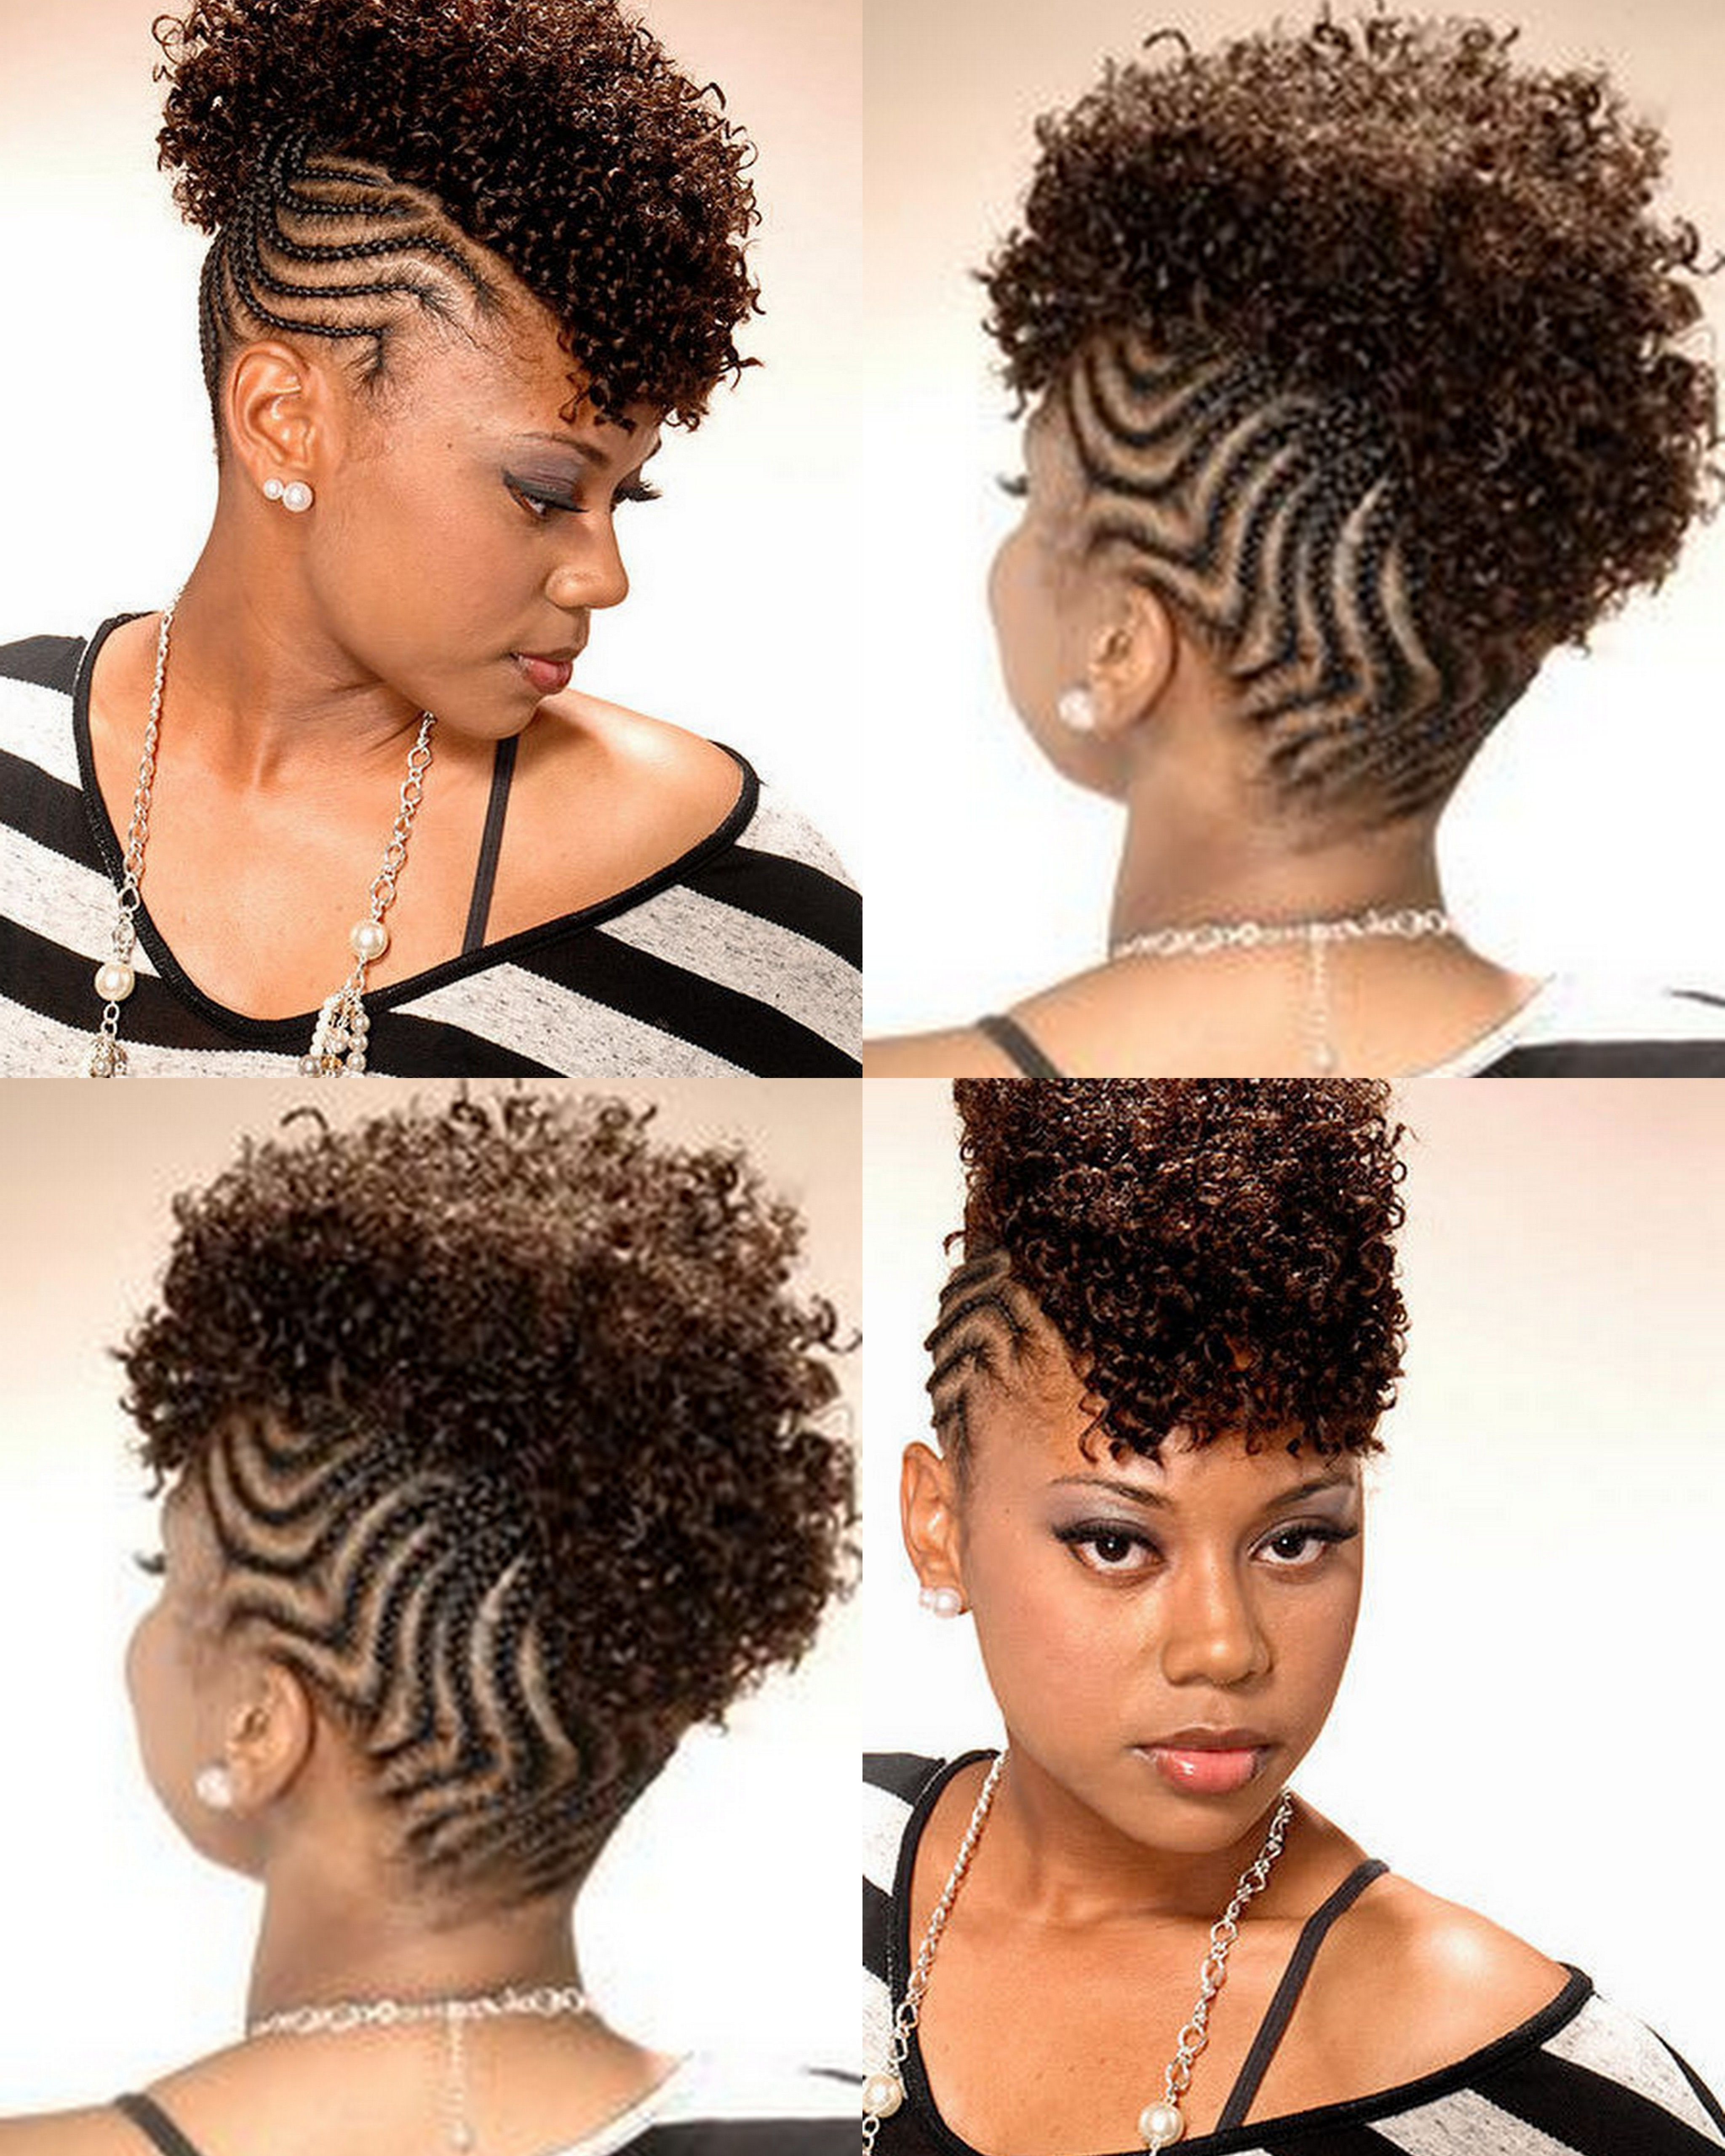 Don't Know What To Do With Your Hair: Check Out This Trendy Throughout Recent Braided Mohawk Hairstyles With Curls (Gallery 2 of 20)